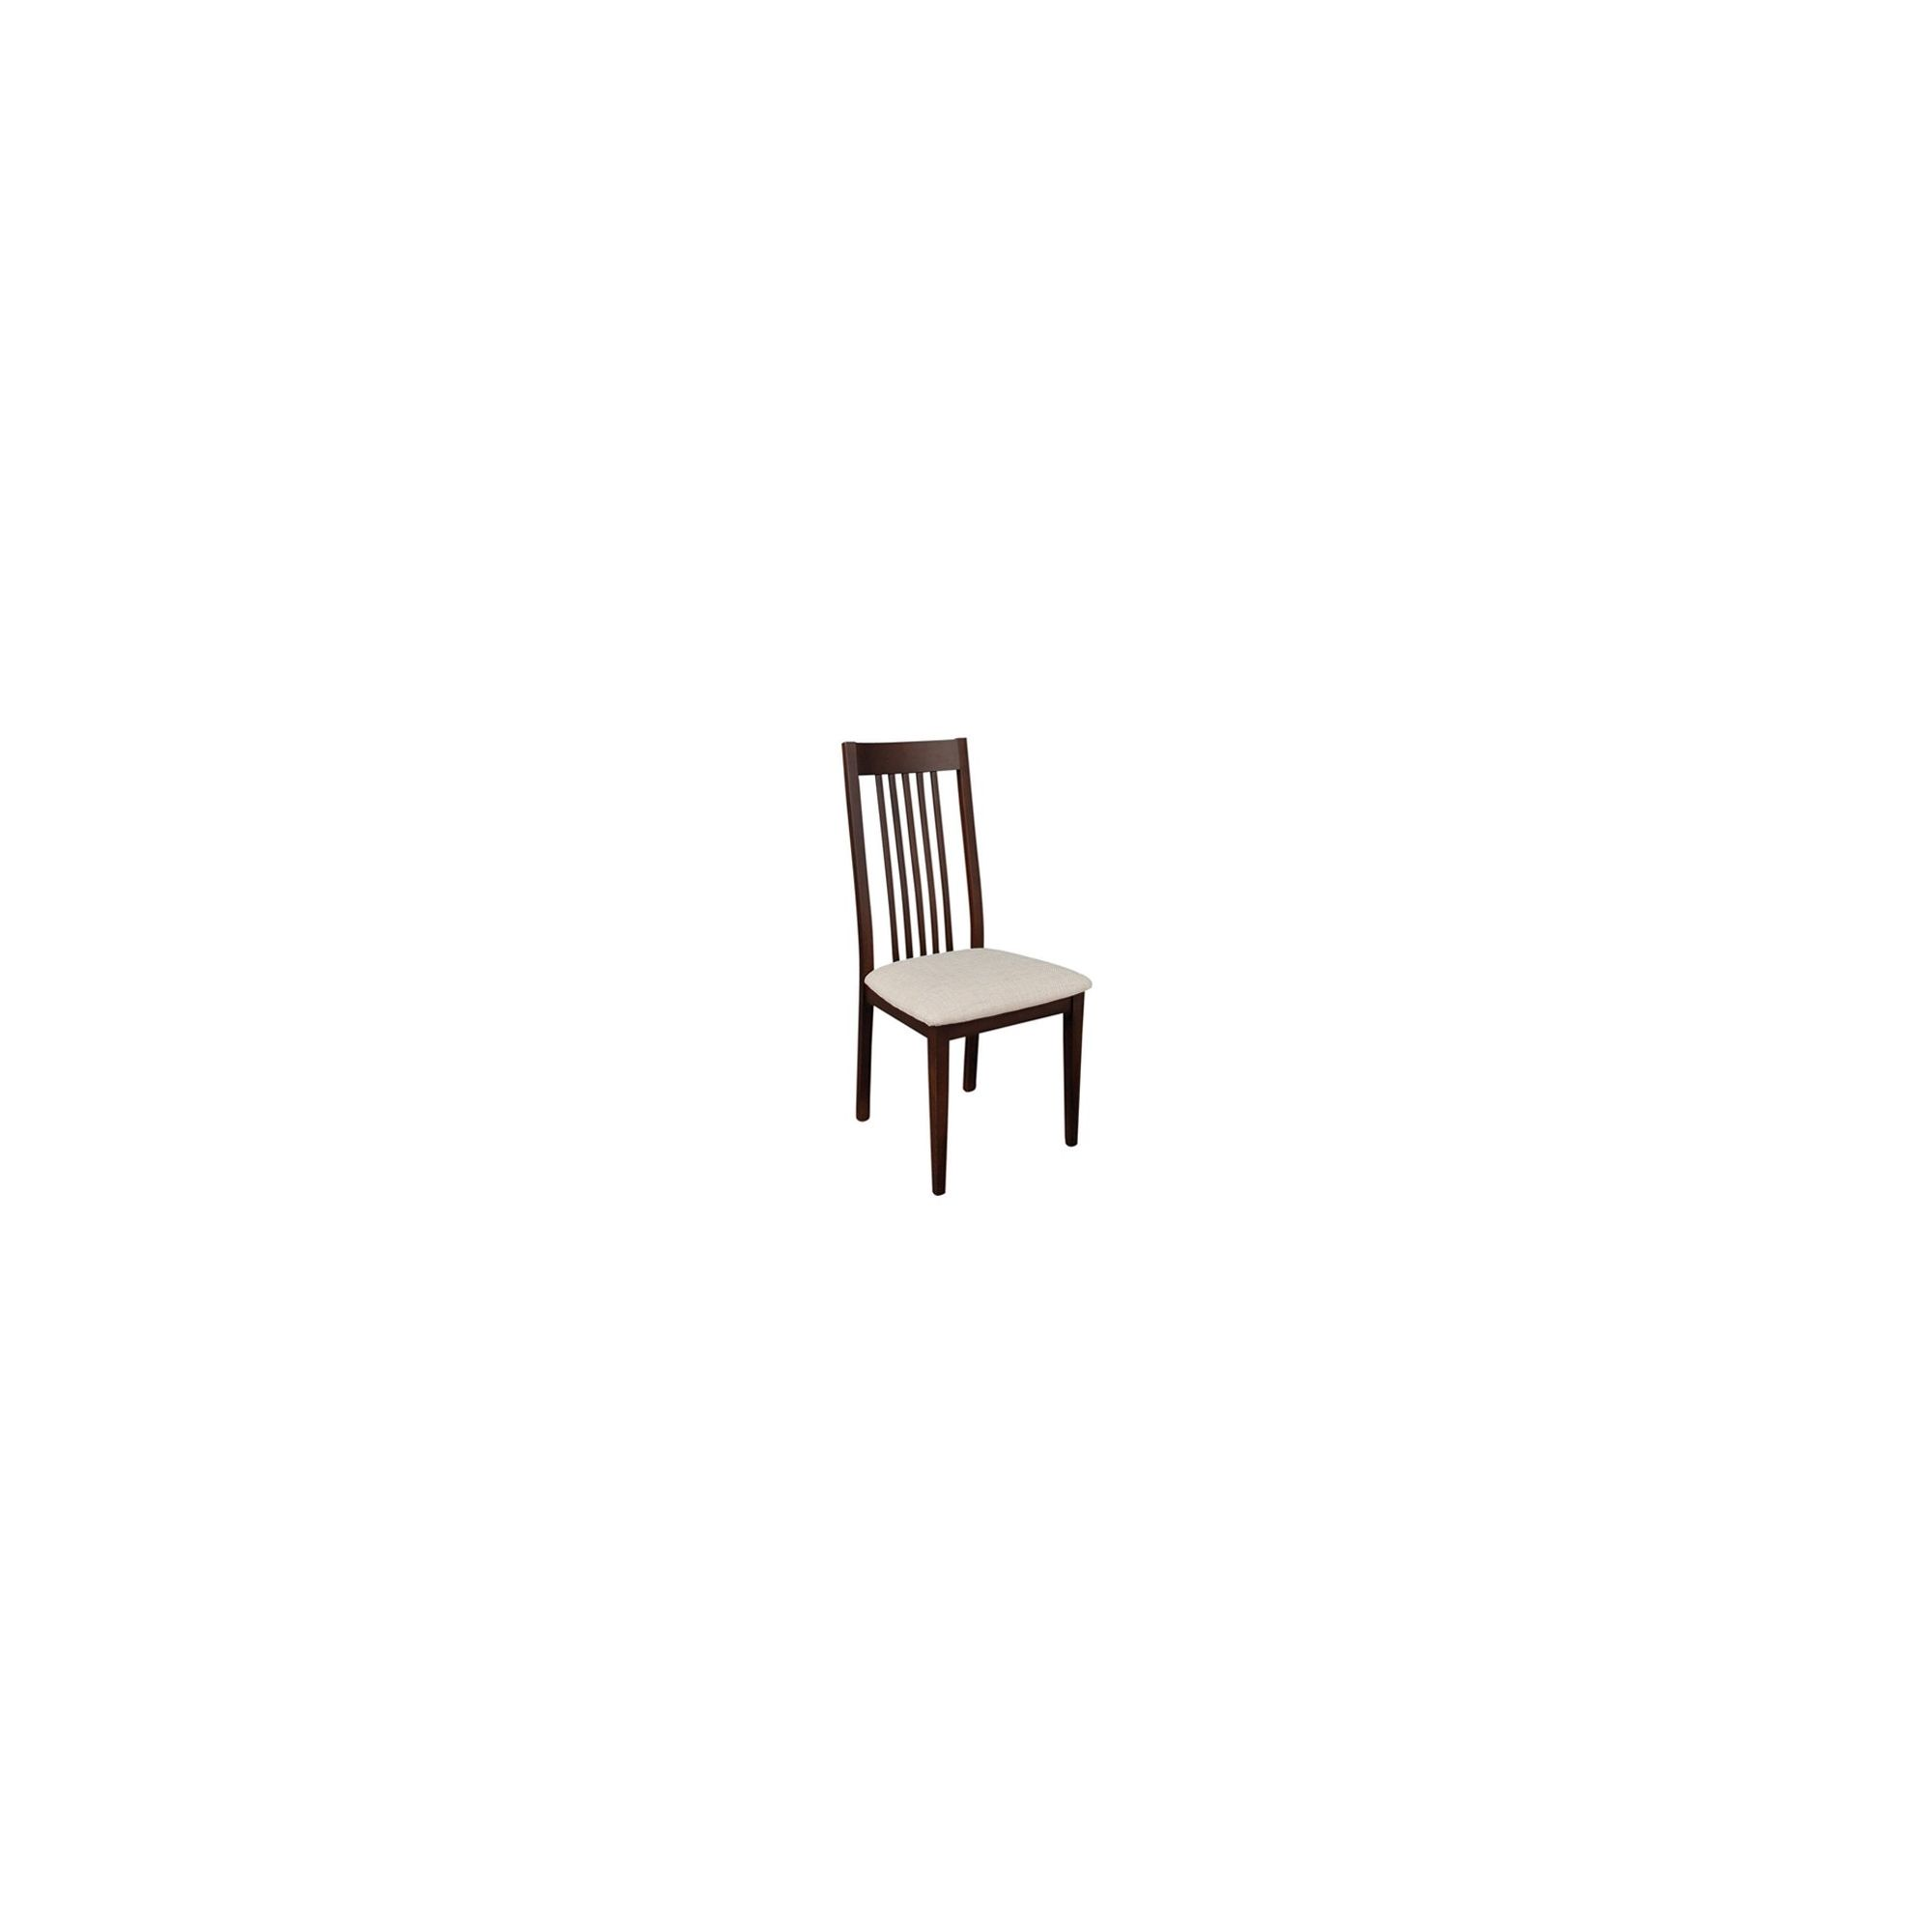 Other Caxton Royale Slat Back Dining Chair in Dark Oak (Set of 2)